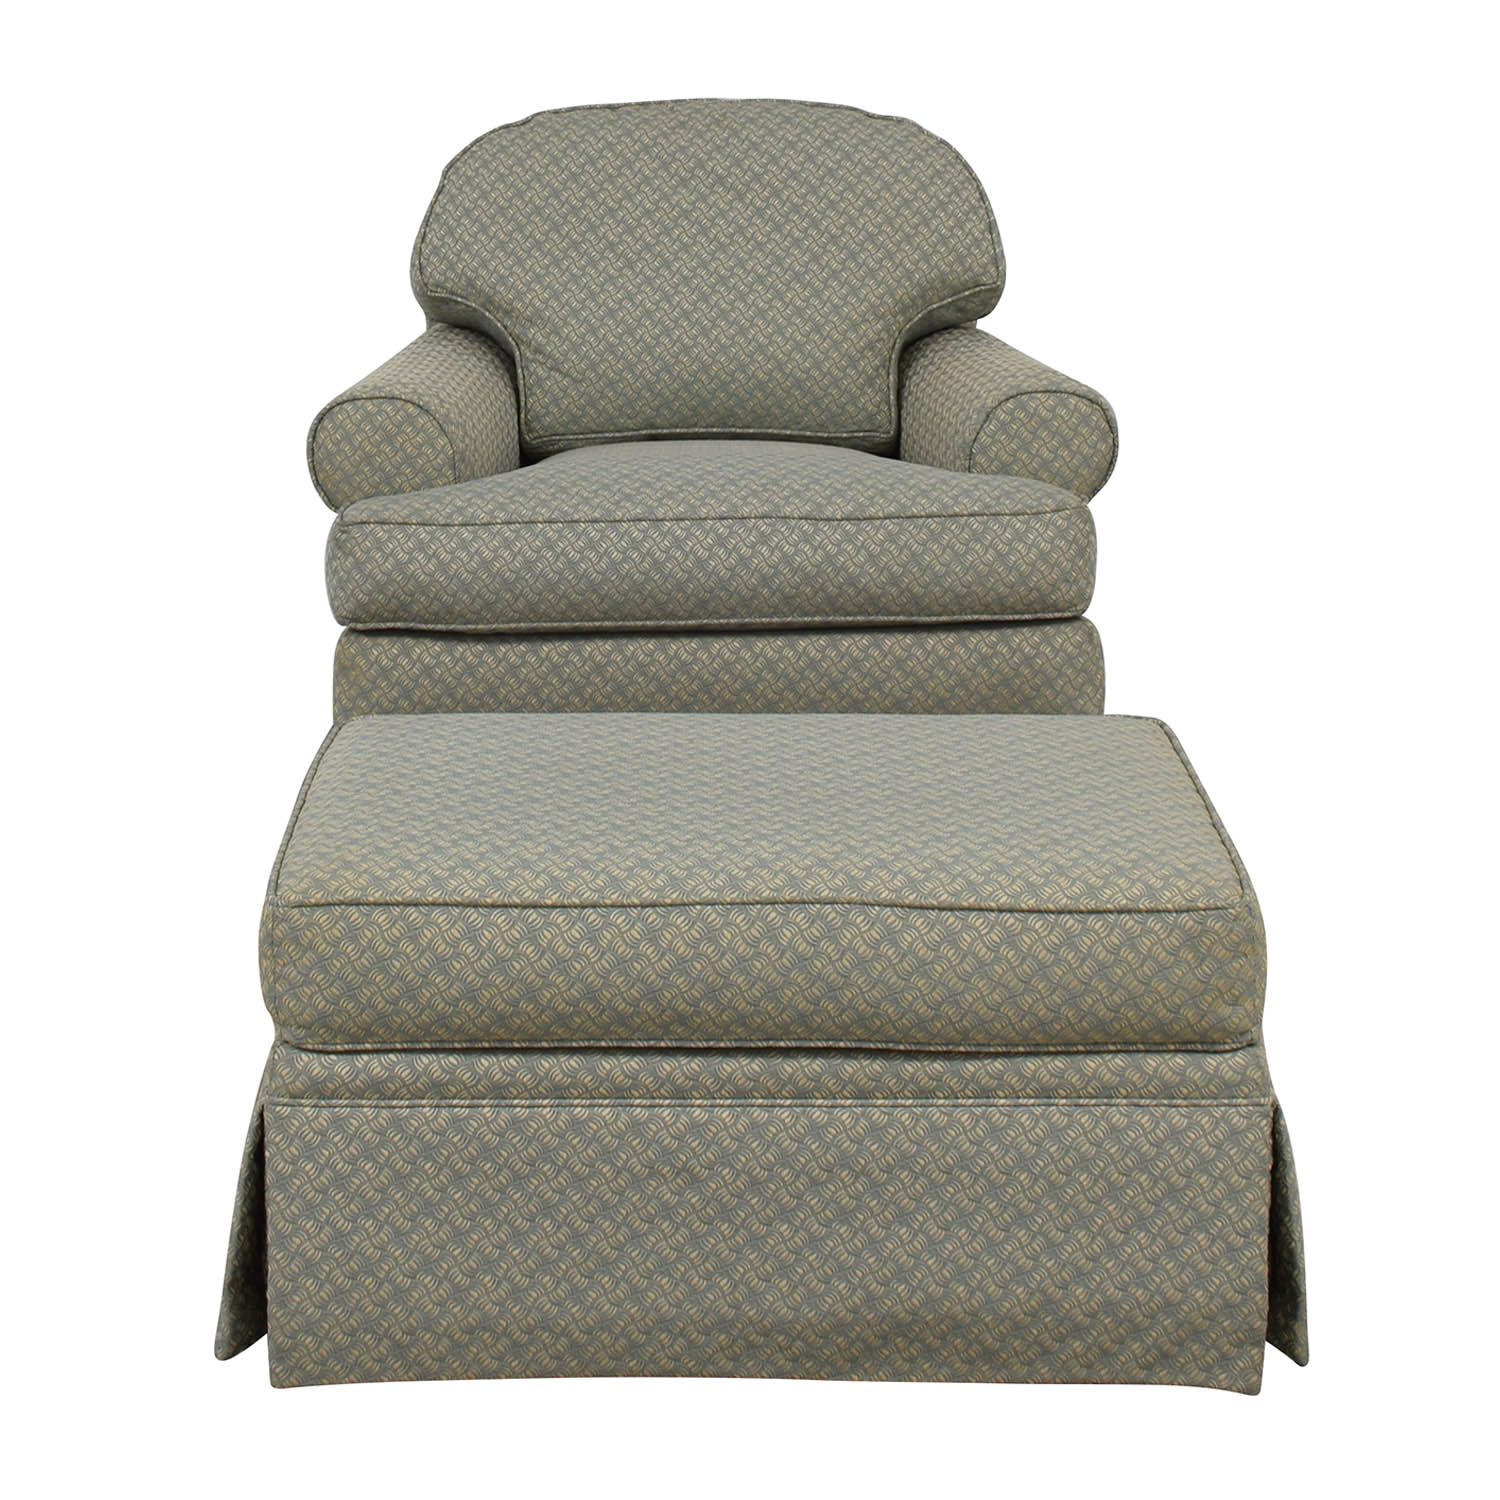 Ethan Allen Sea Green Swivel Rocker with Ottoman Ethan Allen